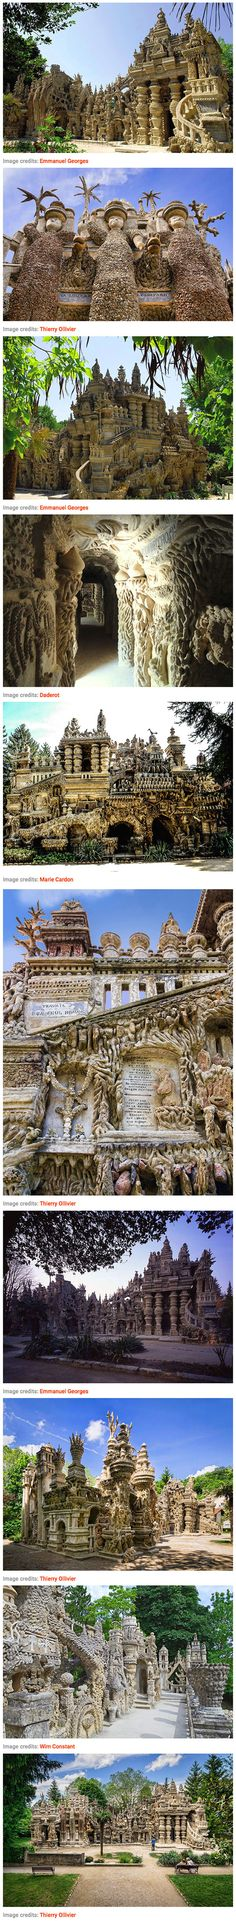 France is chock-full of palaces, but there's one – Palais Ideal – that stands out above the rest as a work of art and devotion. Ferdinand Cheval, a French postman with no formal architectural or artistic training, spent 33 years building this extraordinary structure by cementing together oddly-shaped rocks that he found along his mail route.